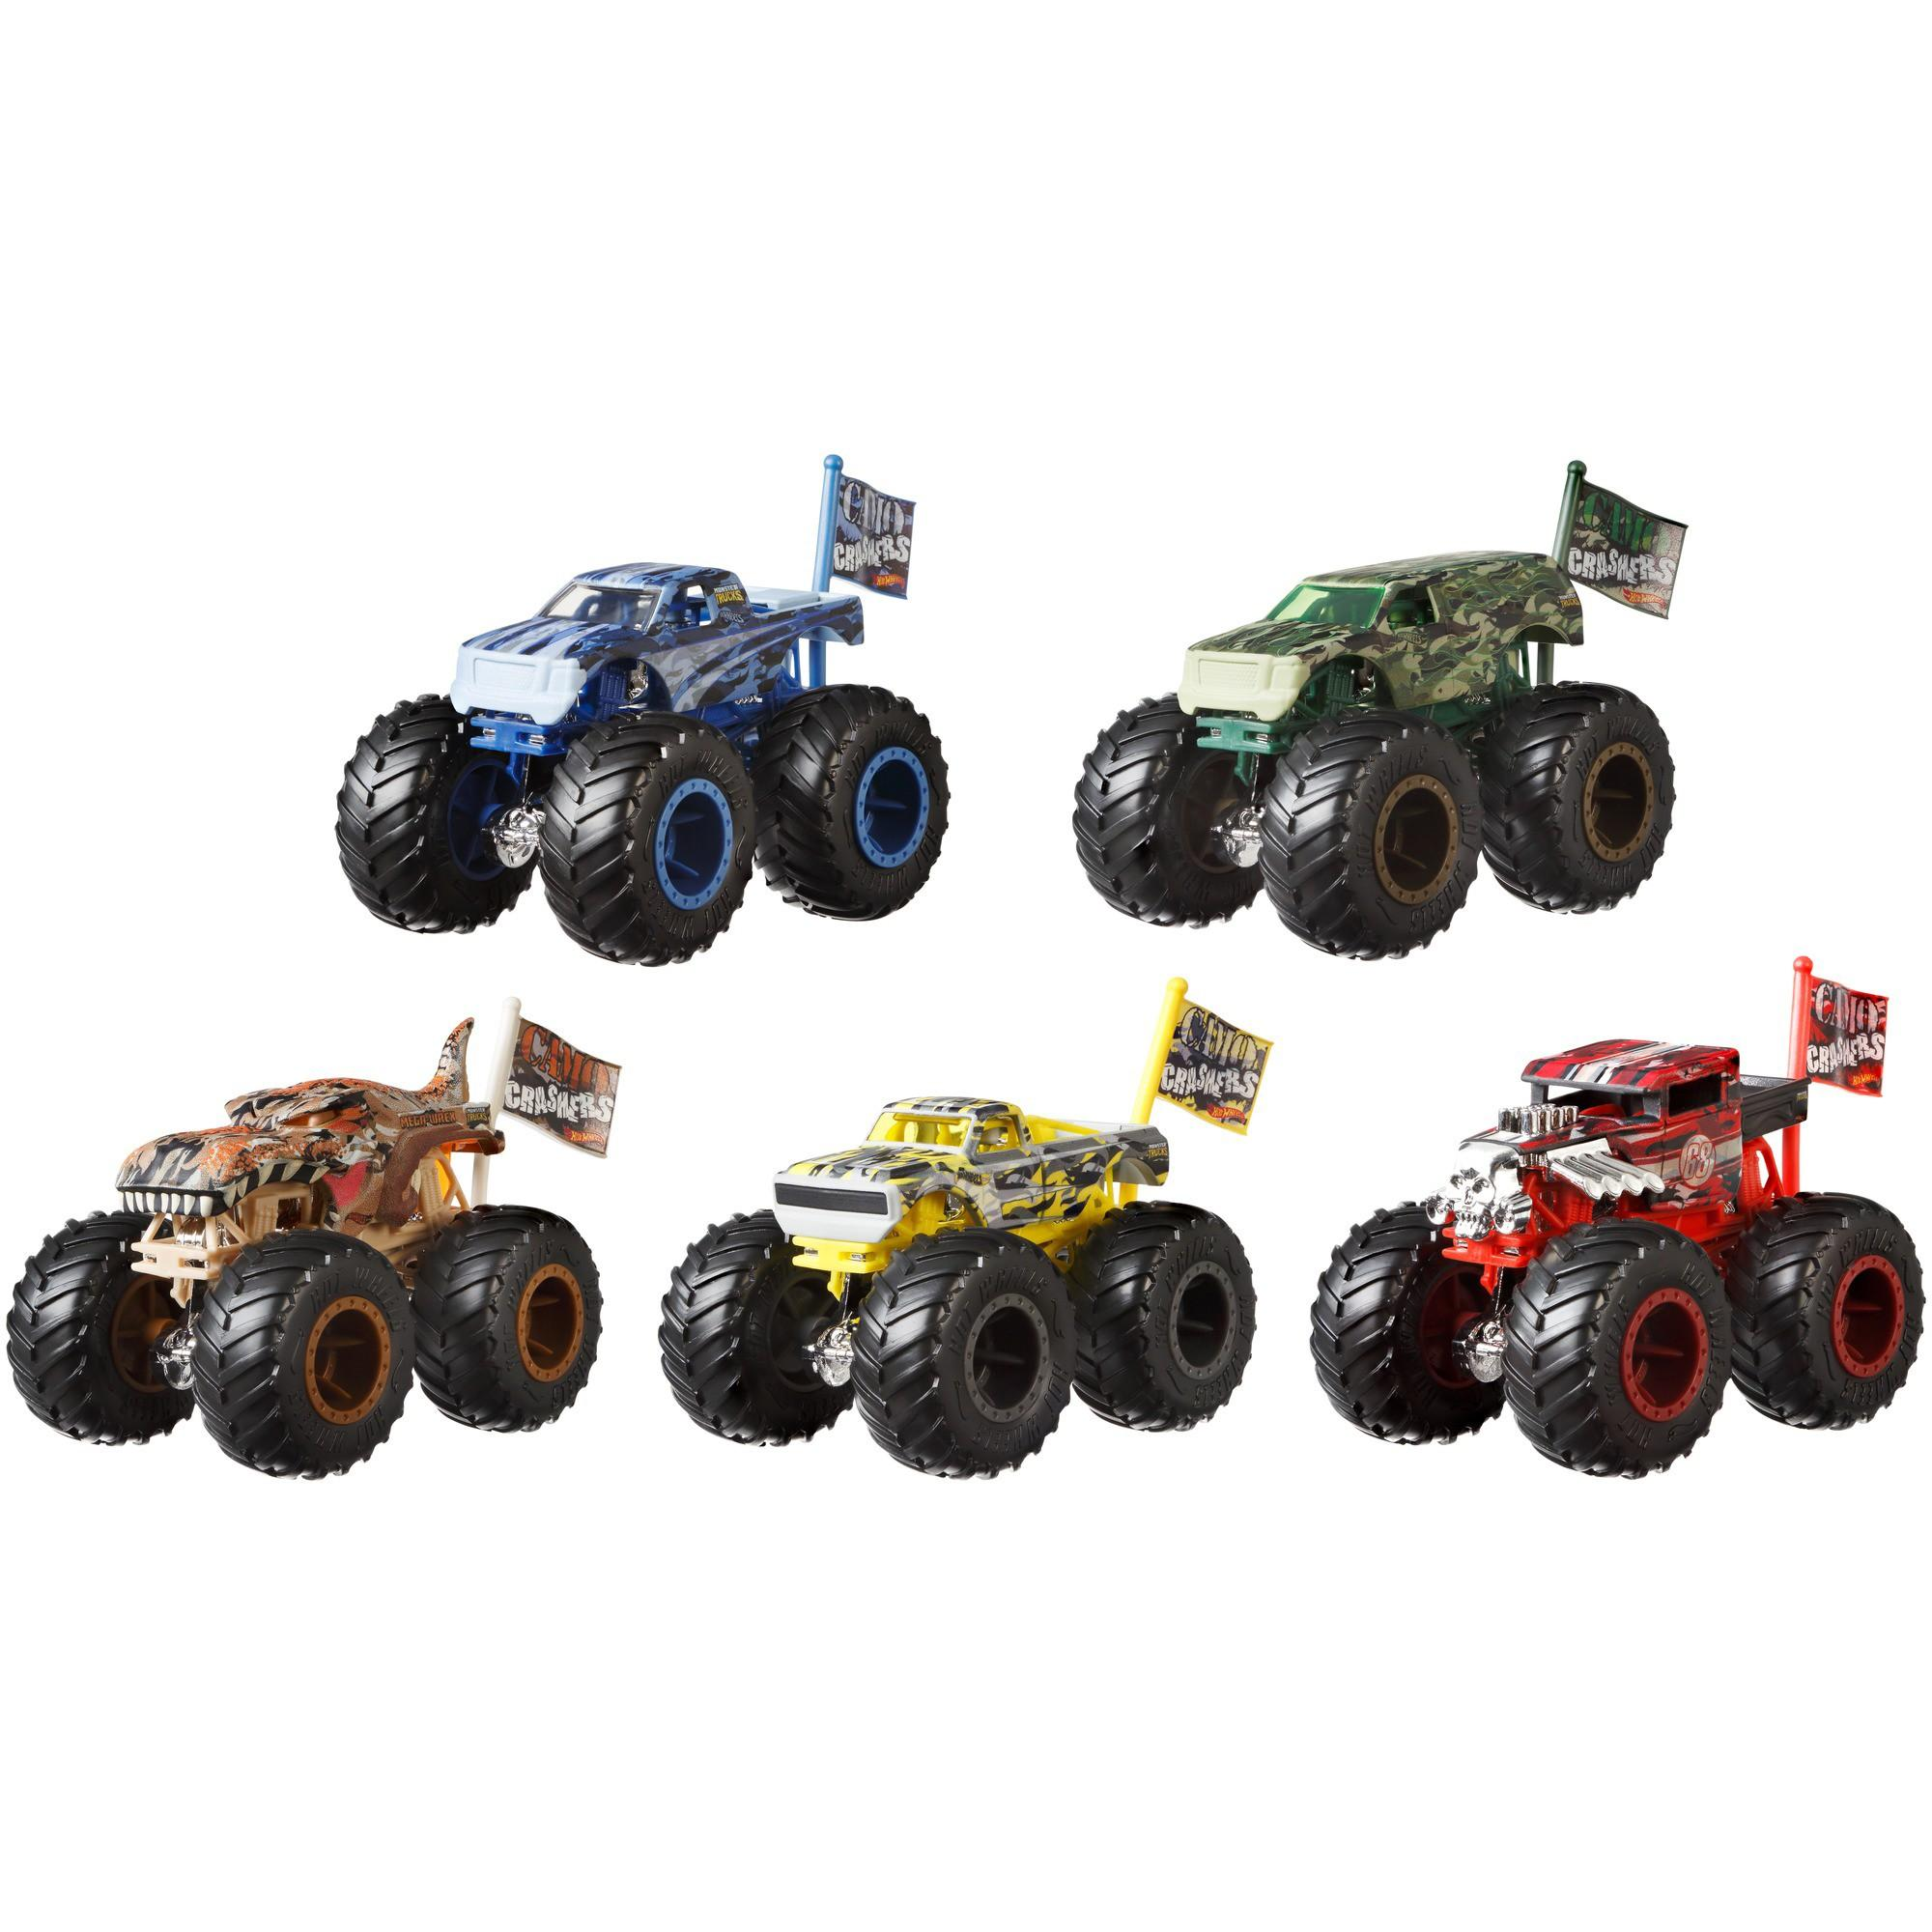 Hot Wheels Monster Trucks 1:64 Scale Camo Crashers Die-Cast Vehicle (Styles May Vary)